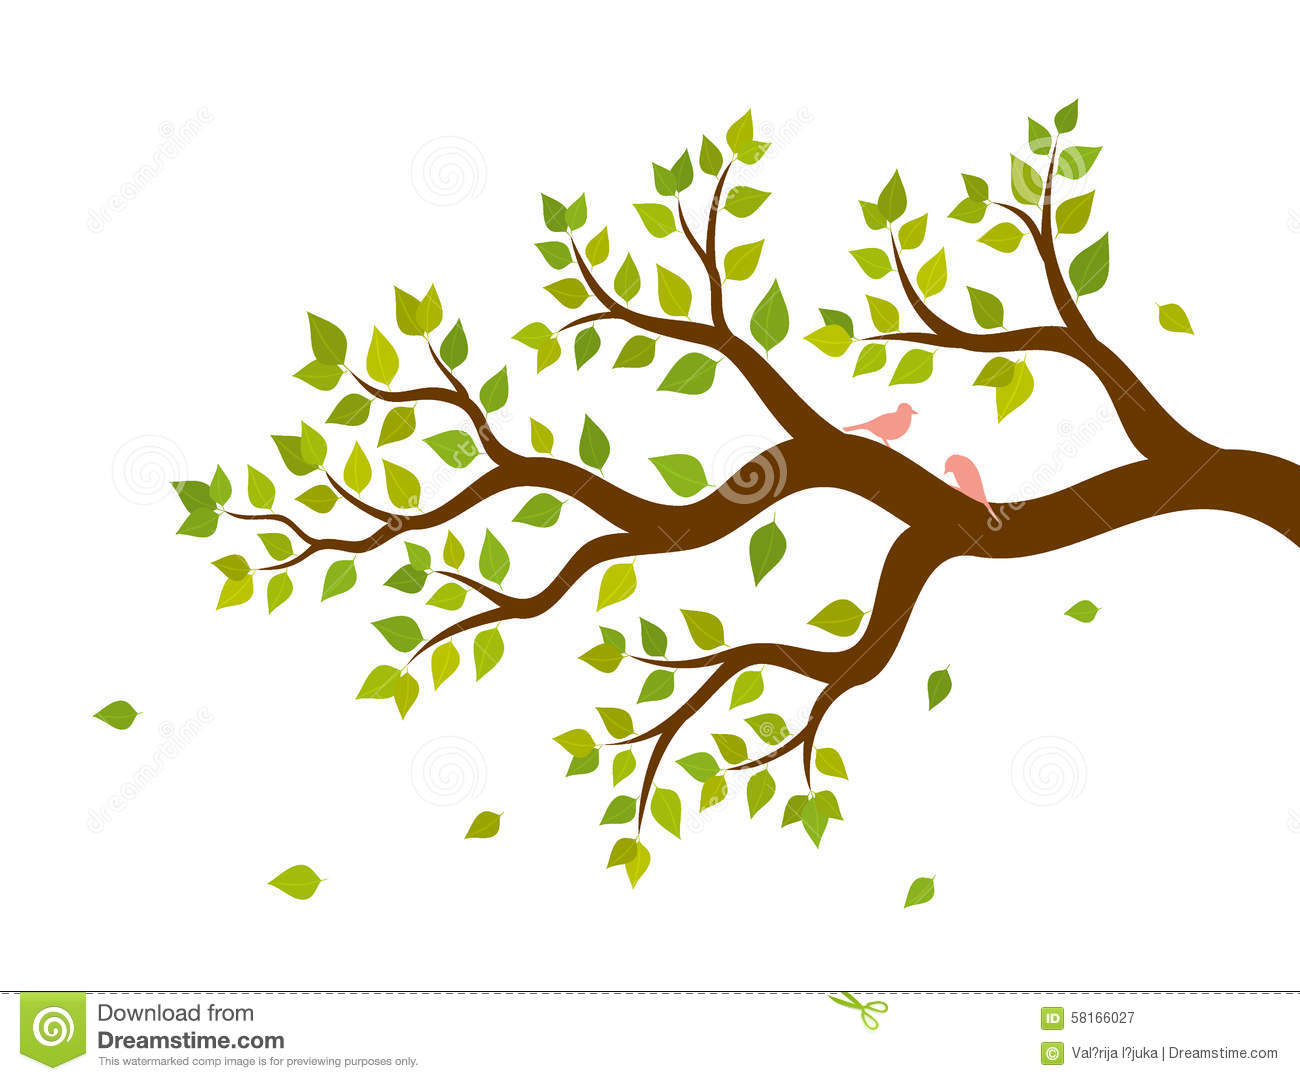 tree branch with leaves vector. royalty-free vector. download vector illustration of tree branch with green leaves t